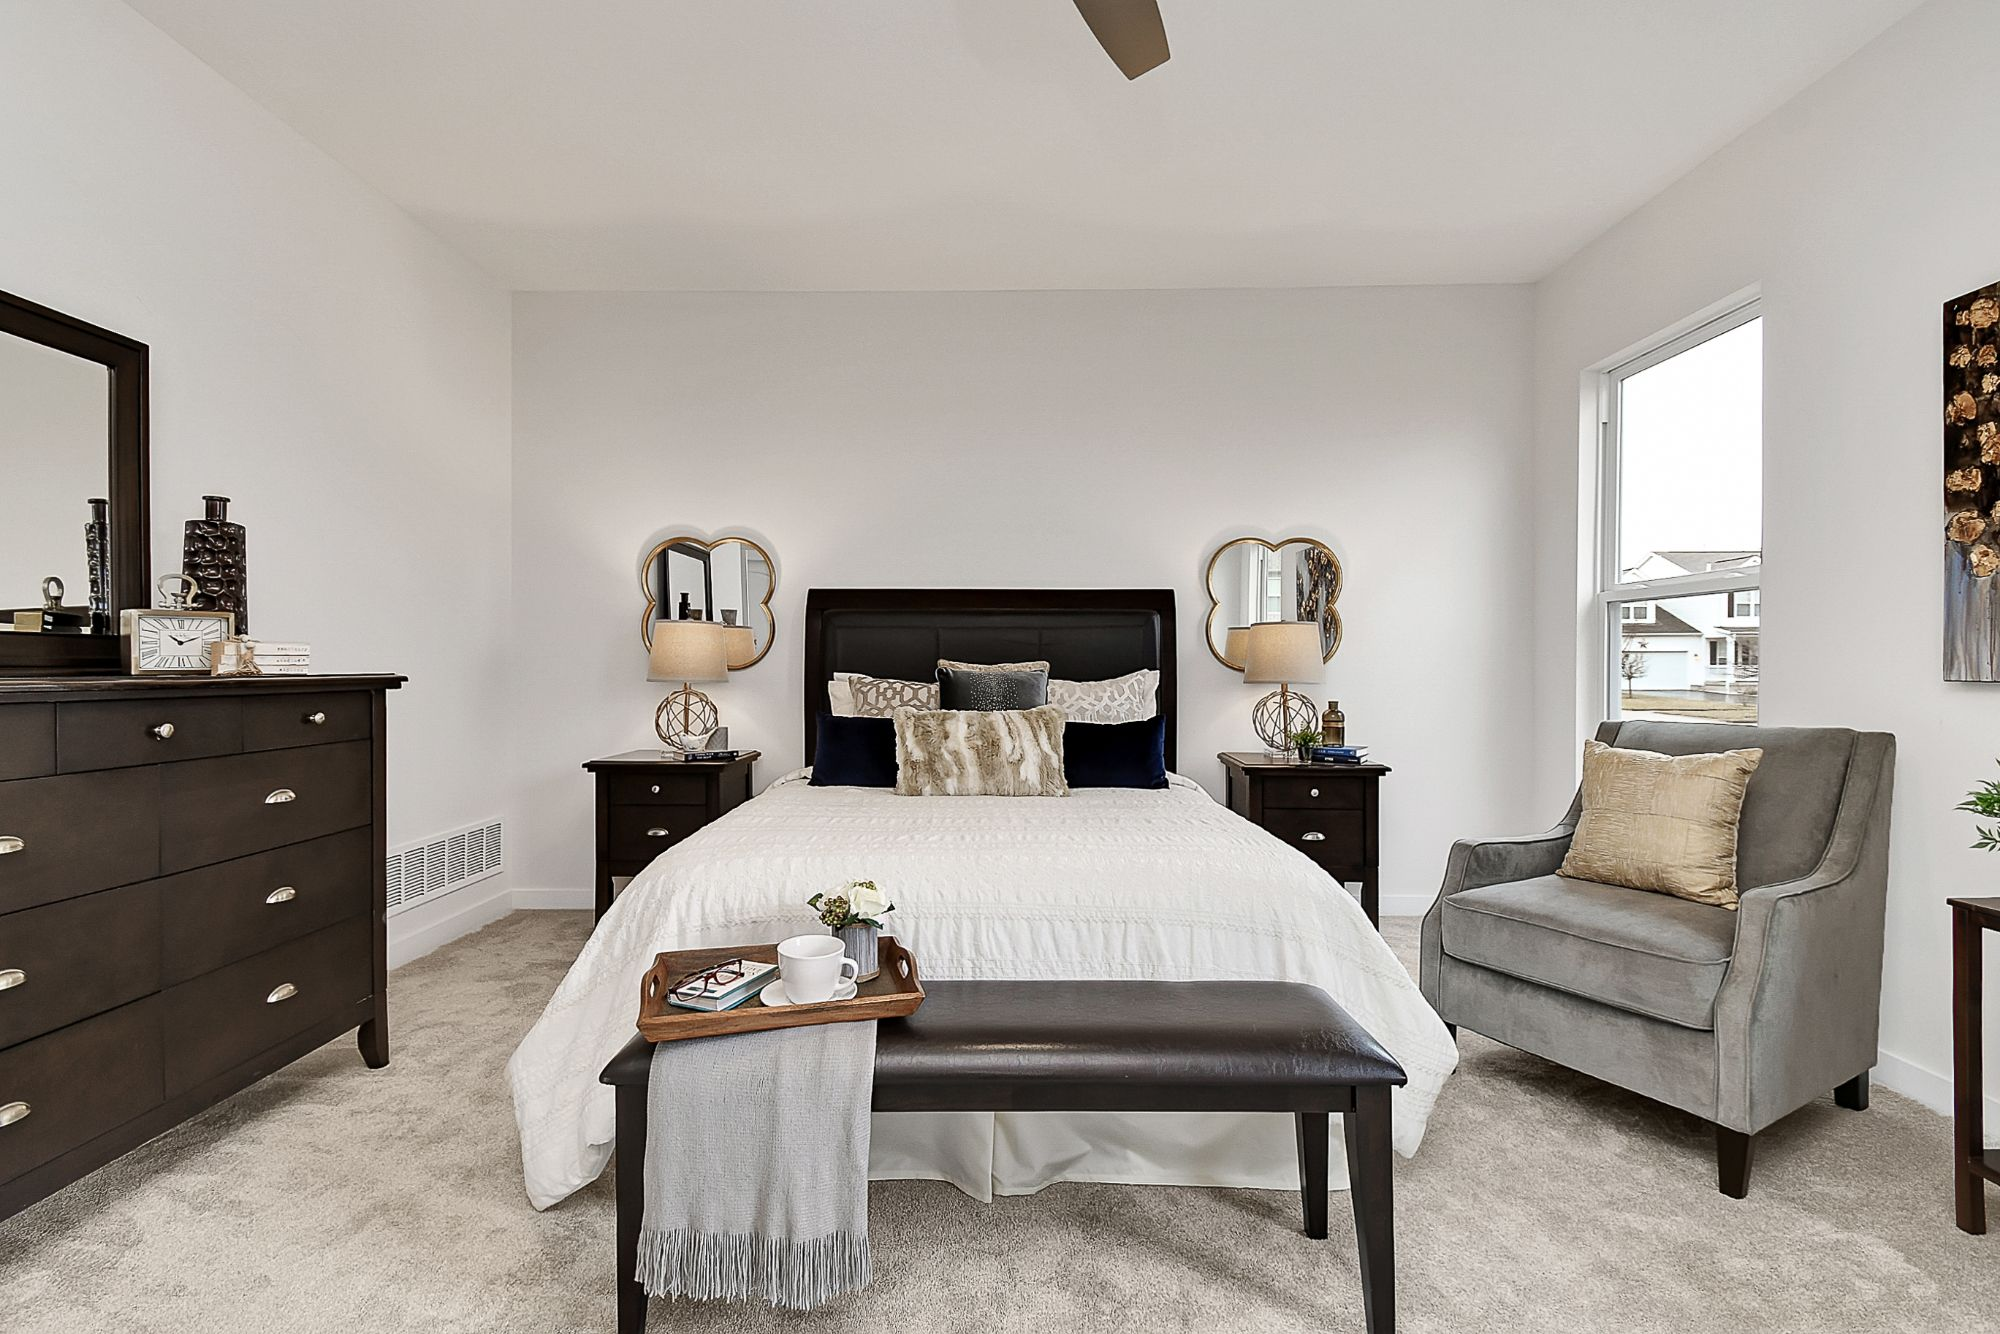 Staged by Sanctuary Staging, photo by JPG Media